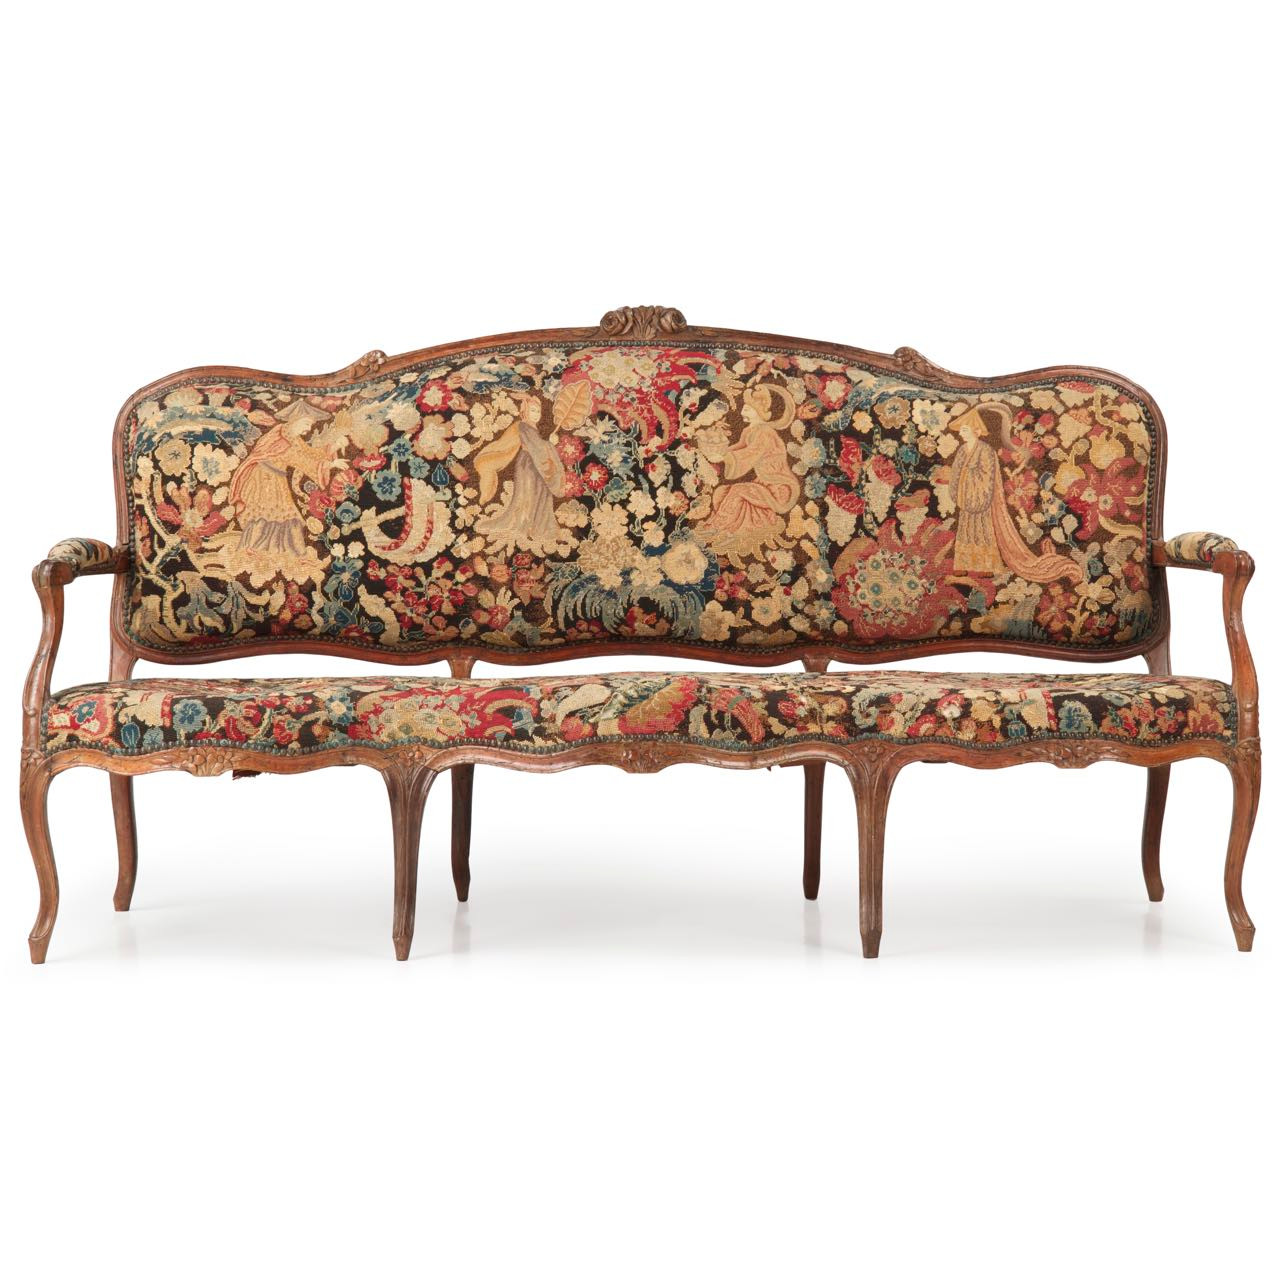 French louis xv period canape or settee c 1750 silla for Canape calculator